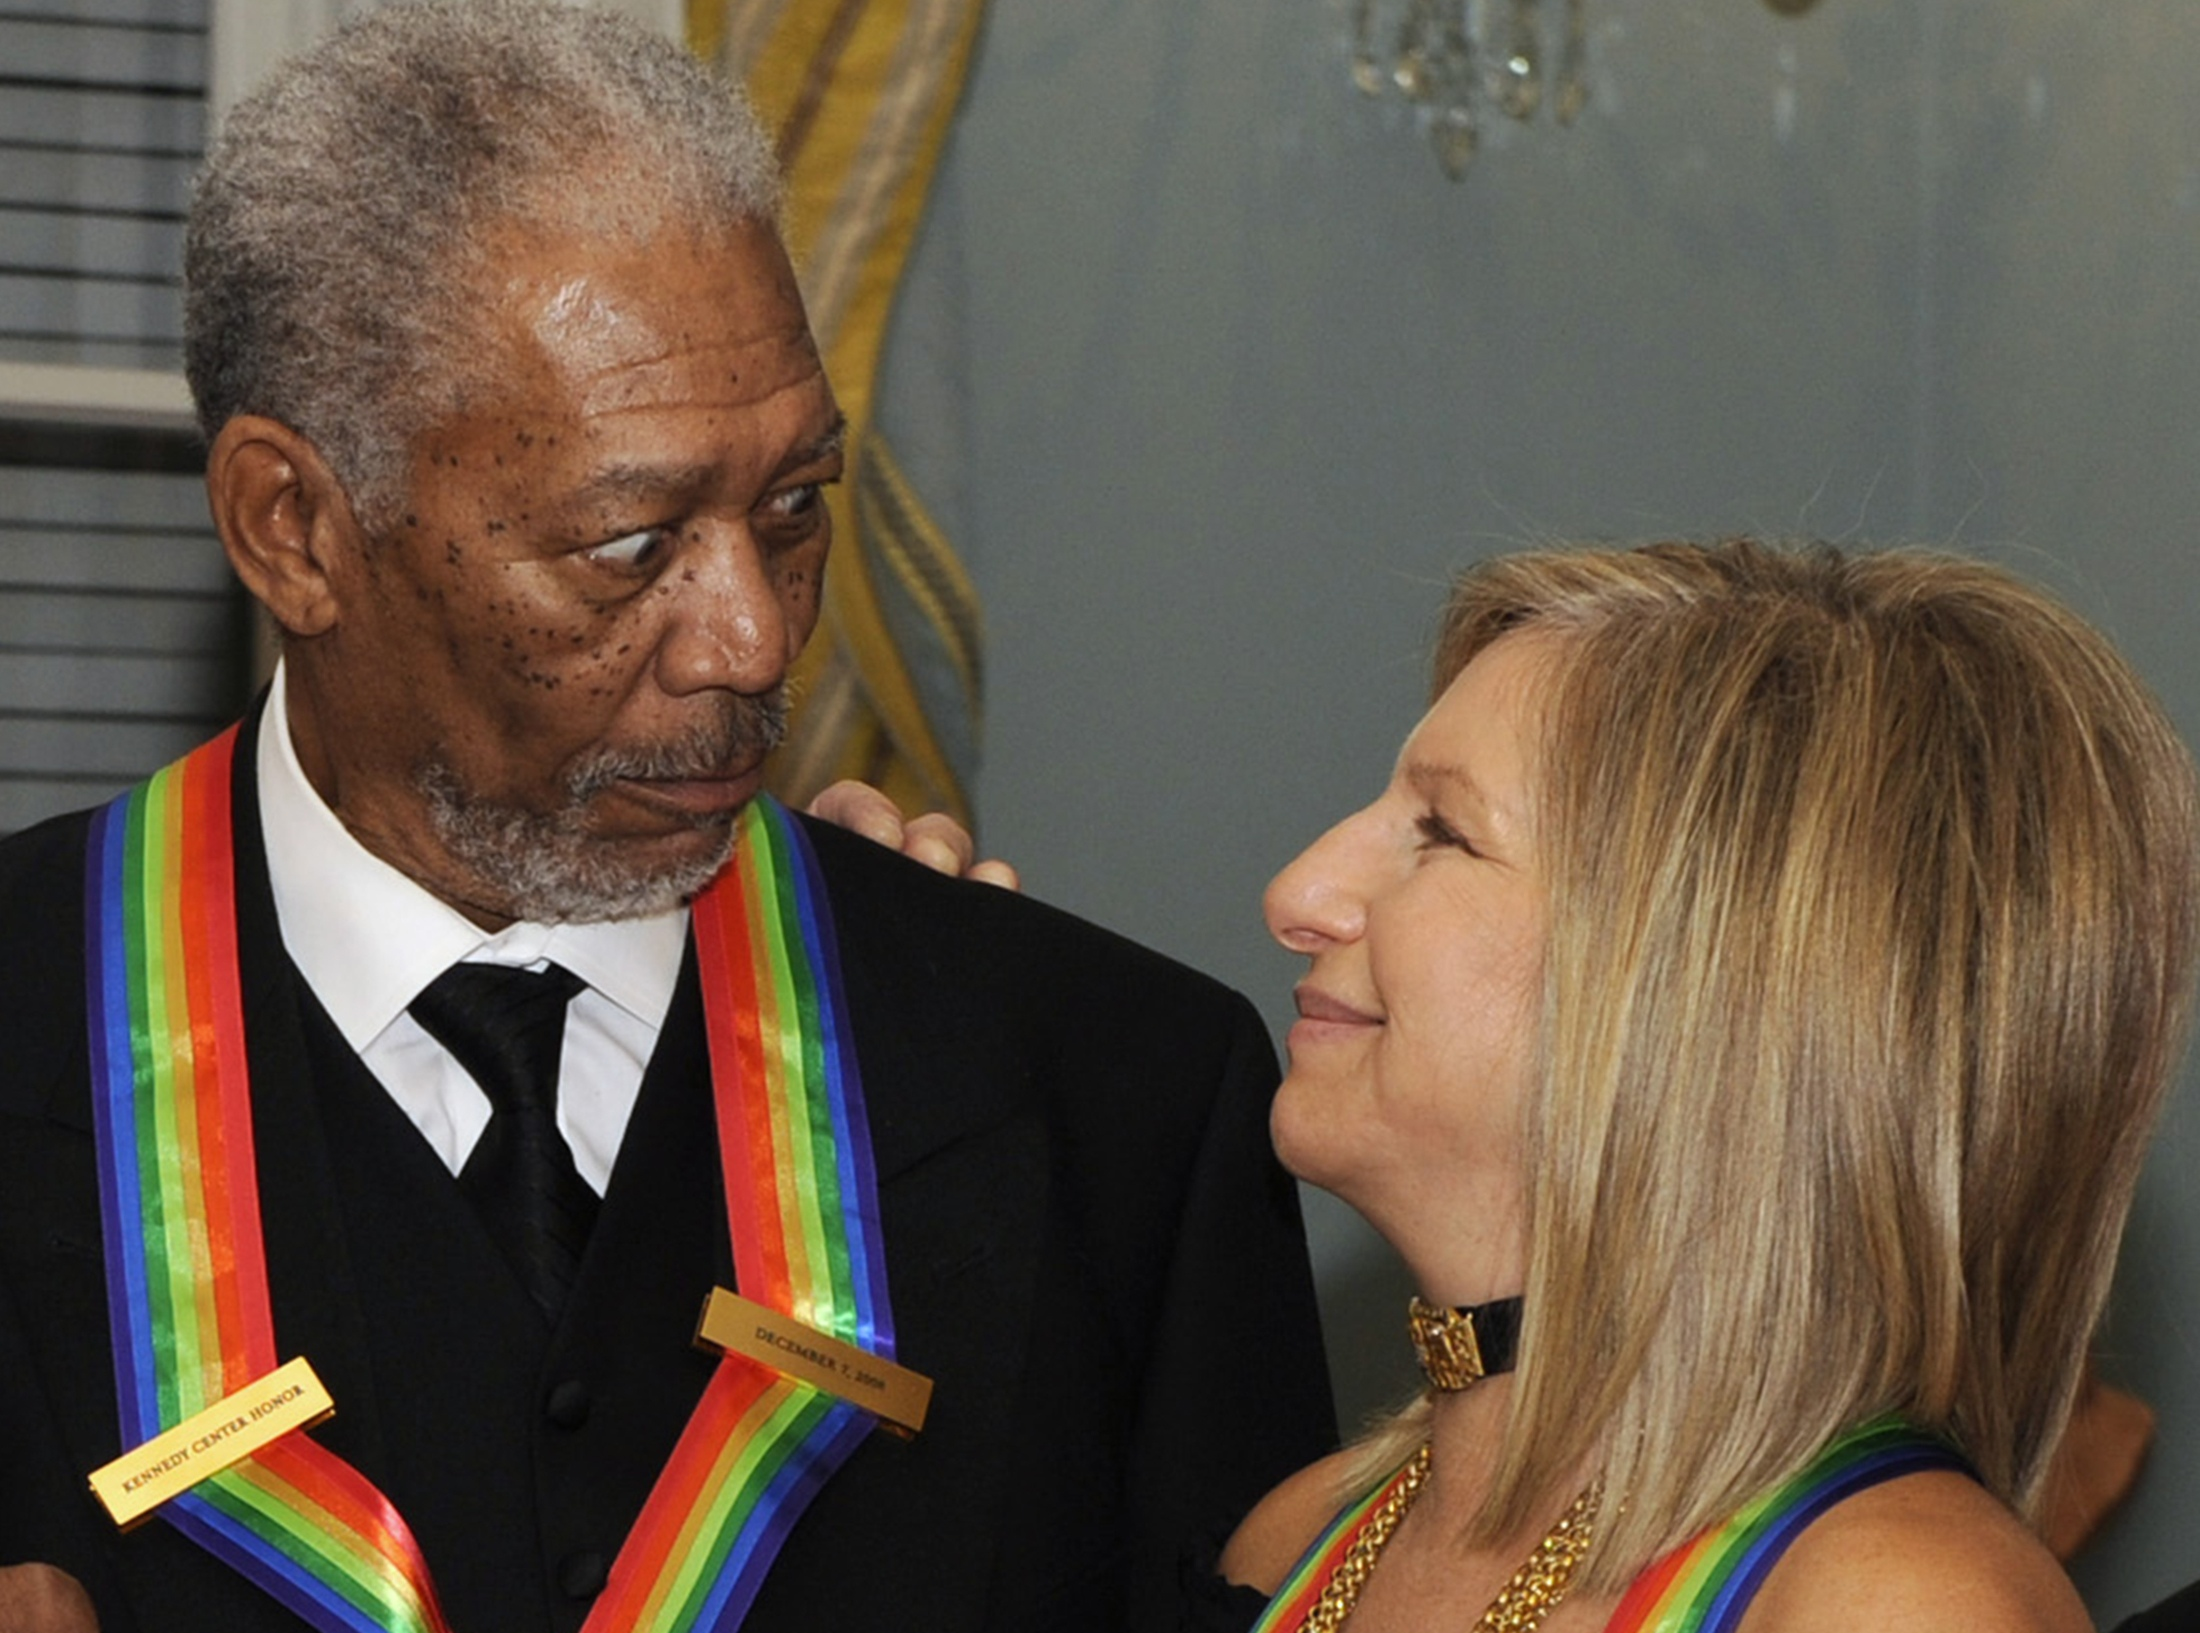 Kennedy Center Honoree actor Morgan Freeman looks at fellow honoree Barbara Streisand as they pose for a photograph after receiving their honors at a ...